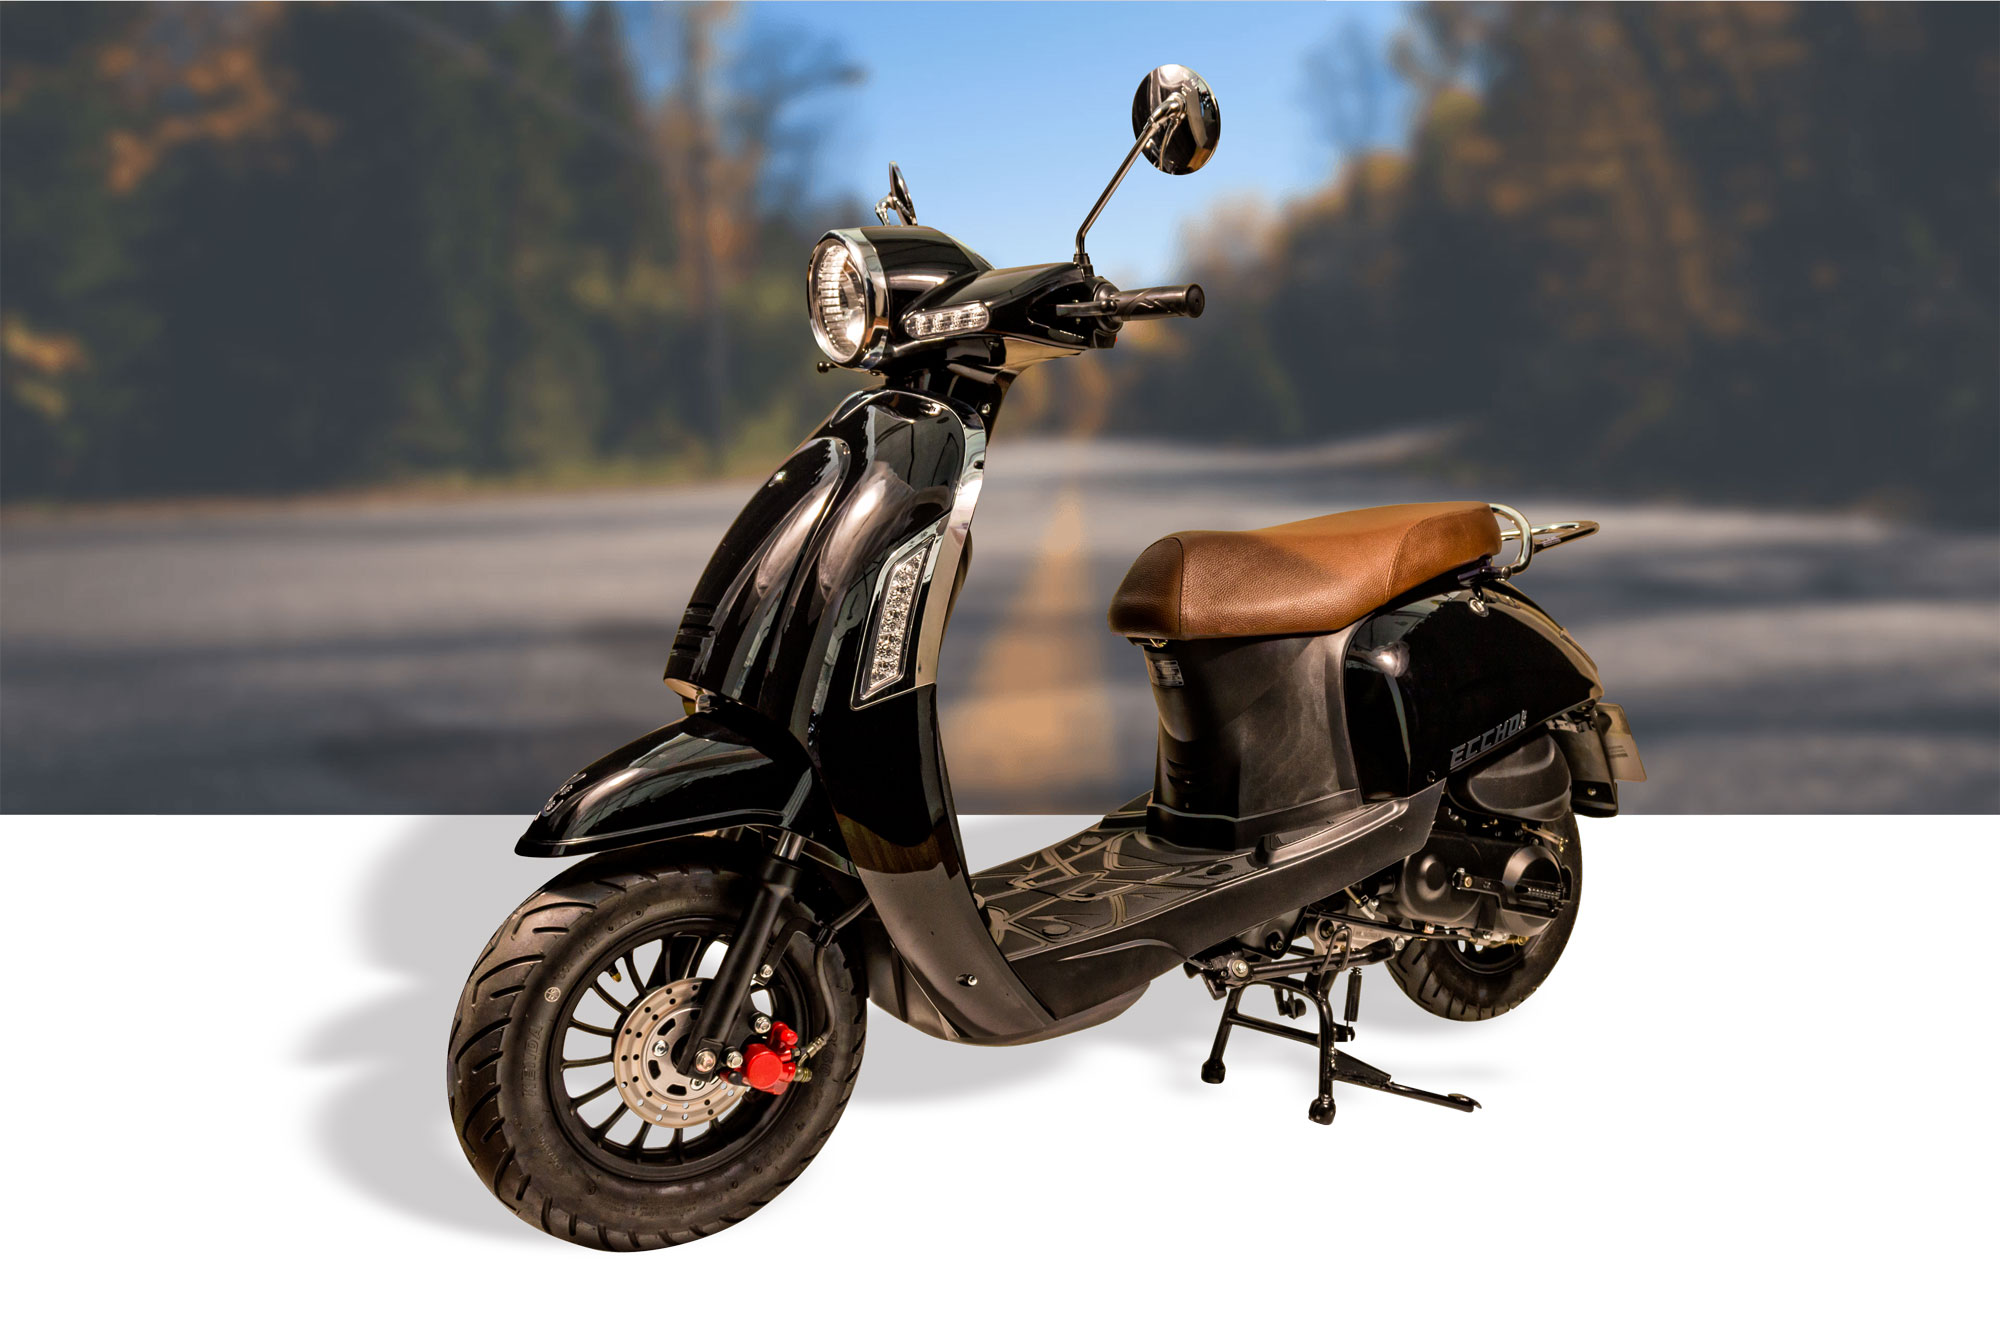 SCOOTER-50-ECCHO-NEW-CITY-EFI-08